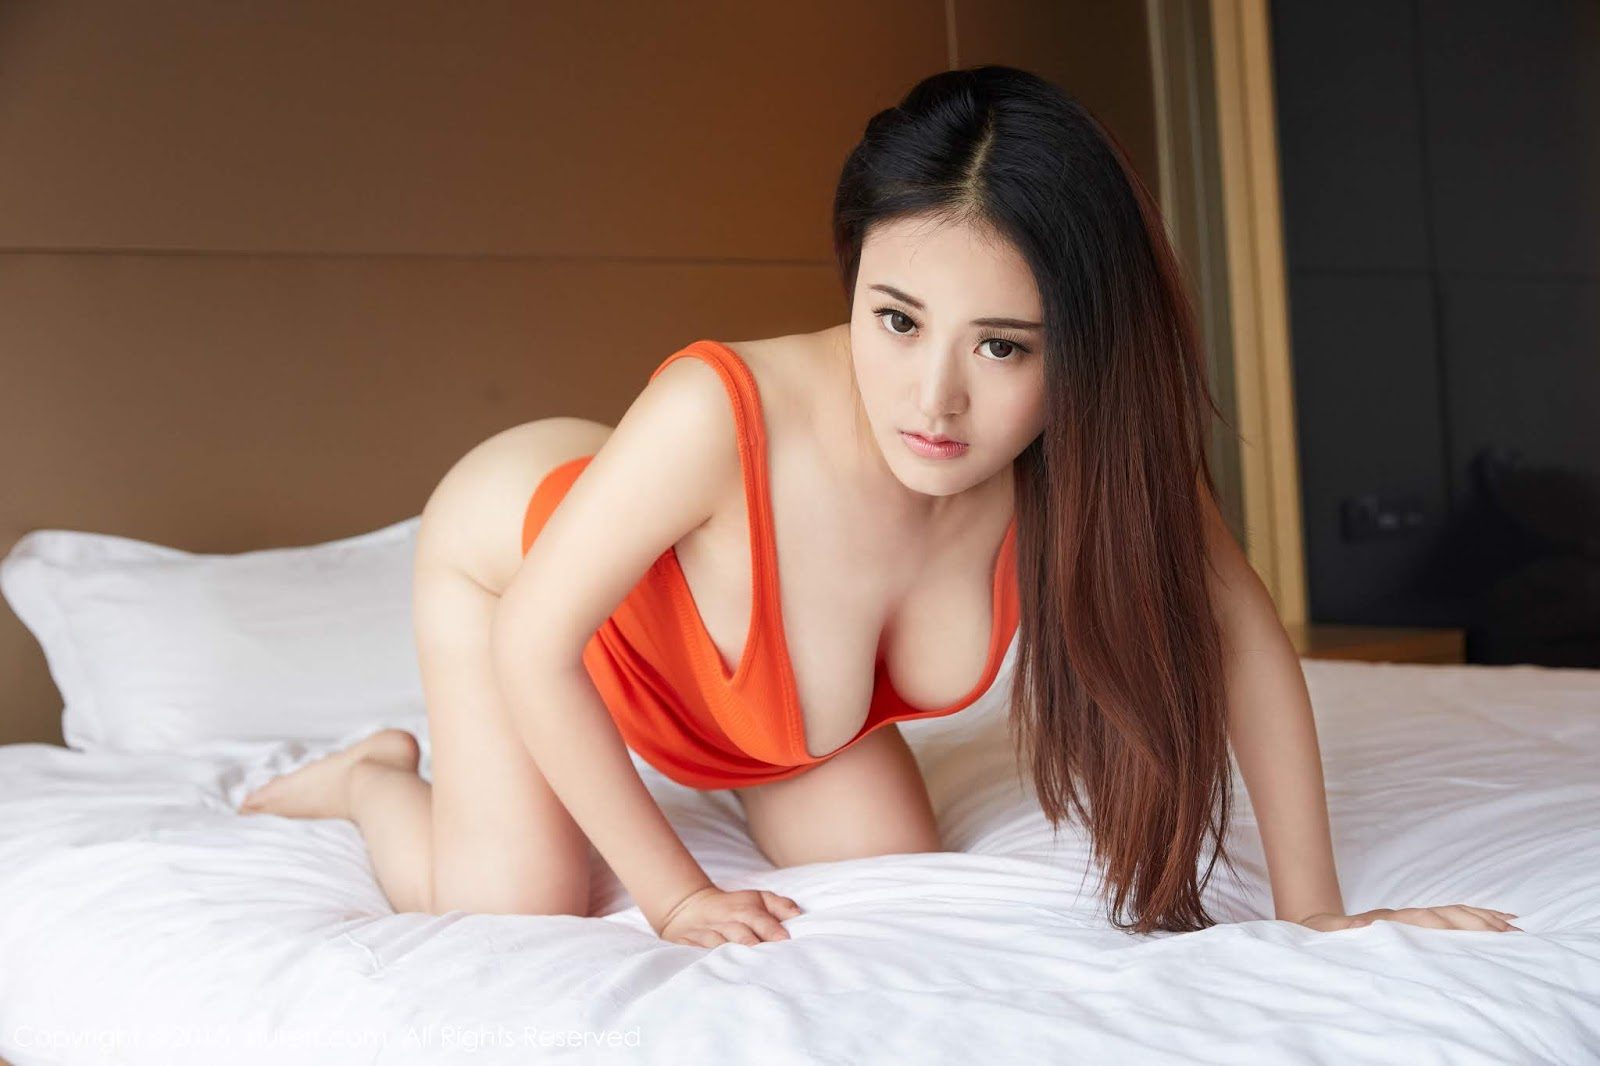 Asian picture archives, asian schoolgirl knickers